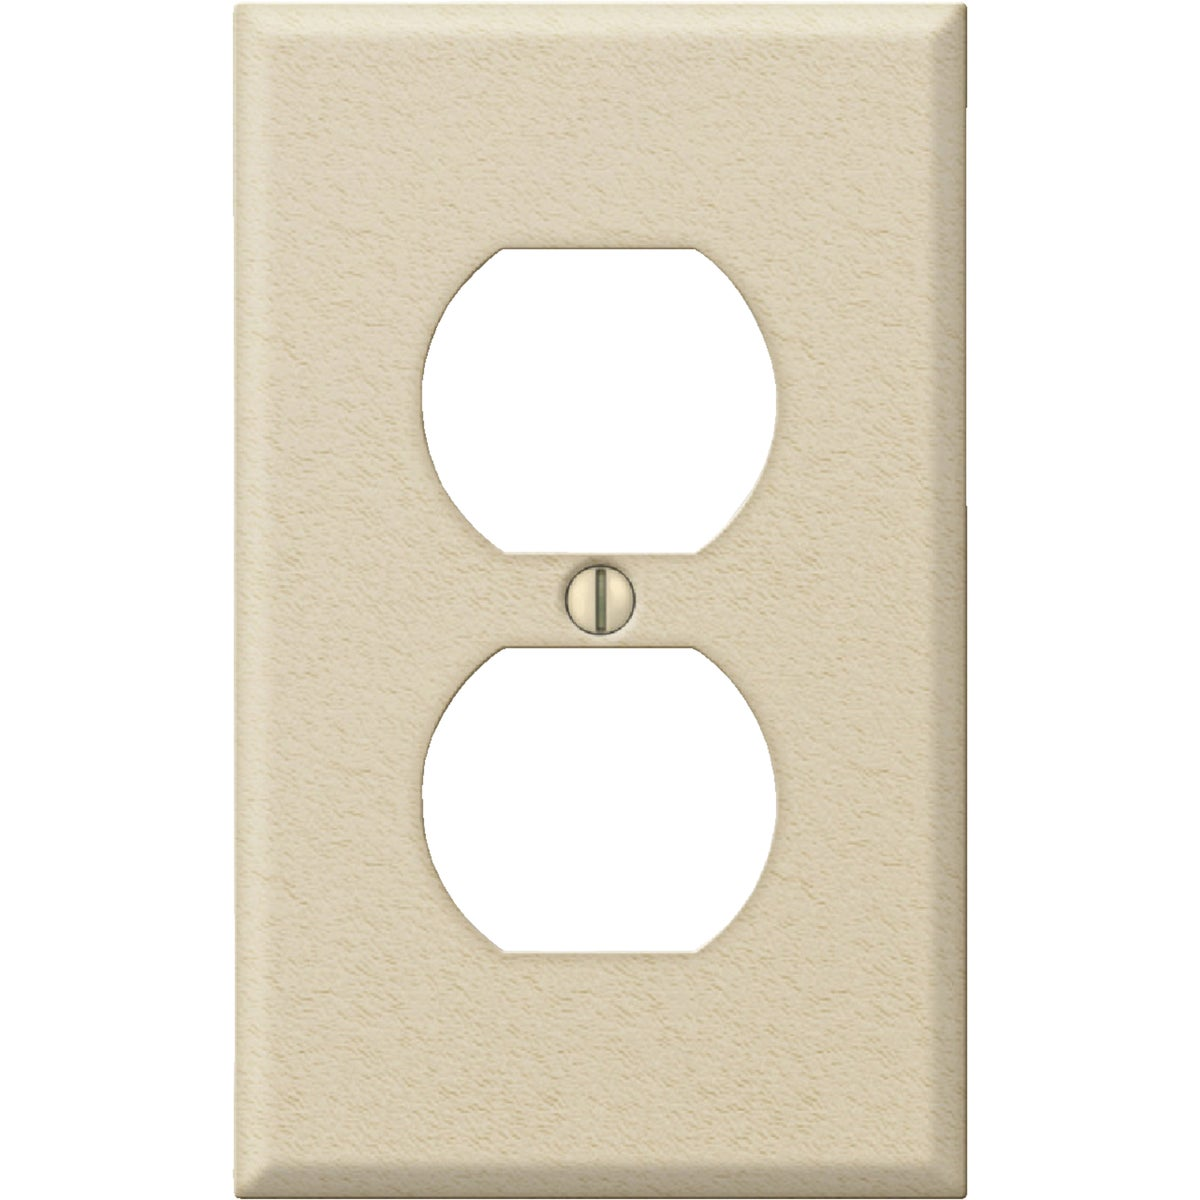 IV OUTLET WALL PLATE - 8IK108 by Jackson Deerfield Mf